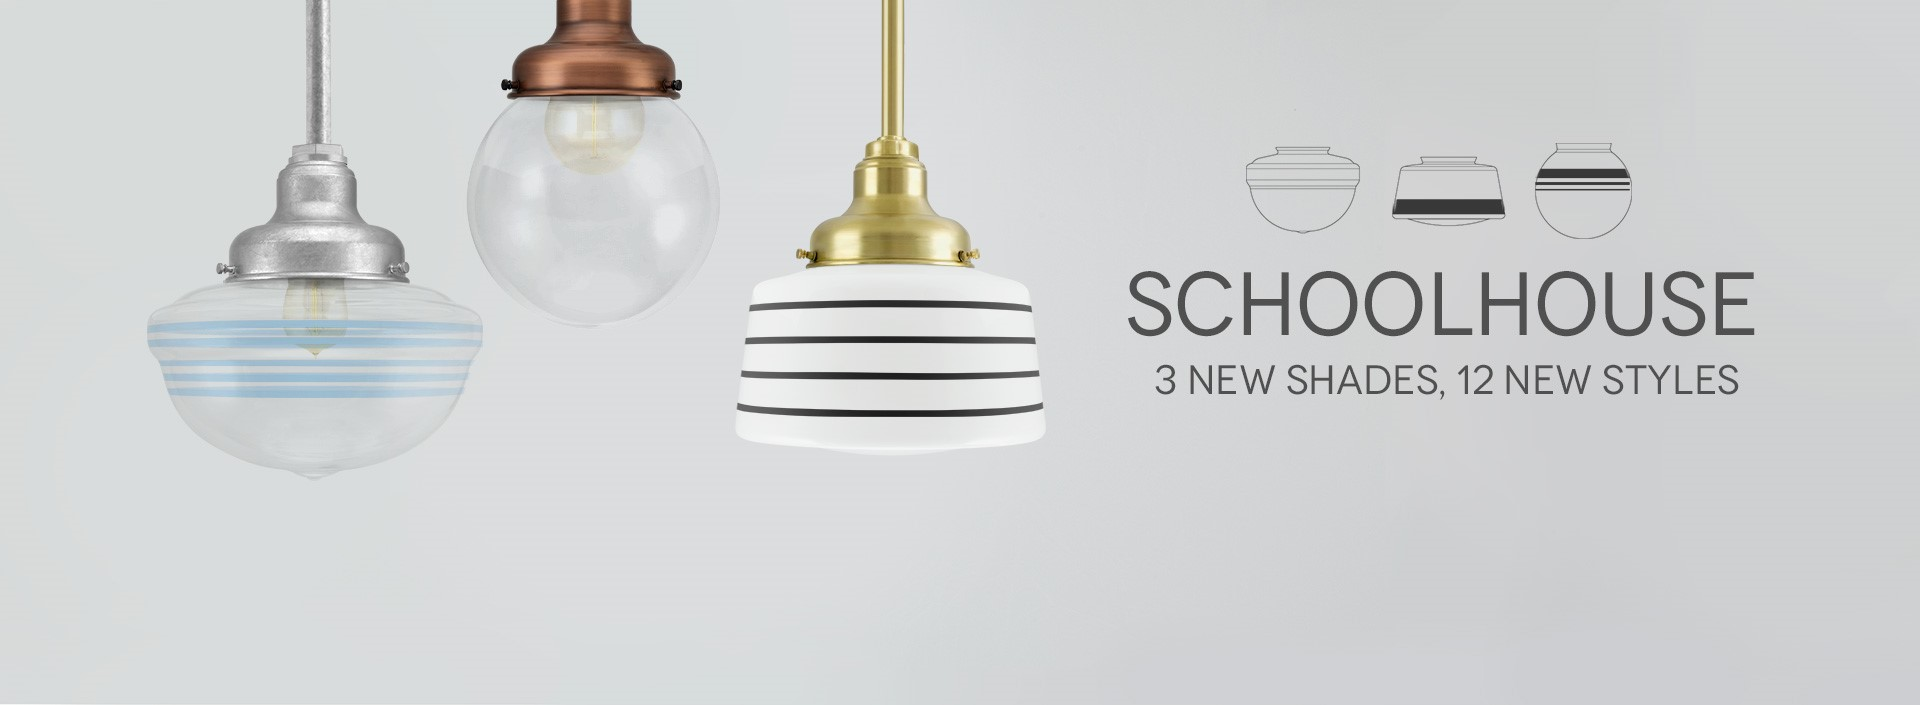 The Schoolhouse New Style Light